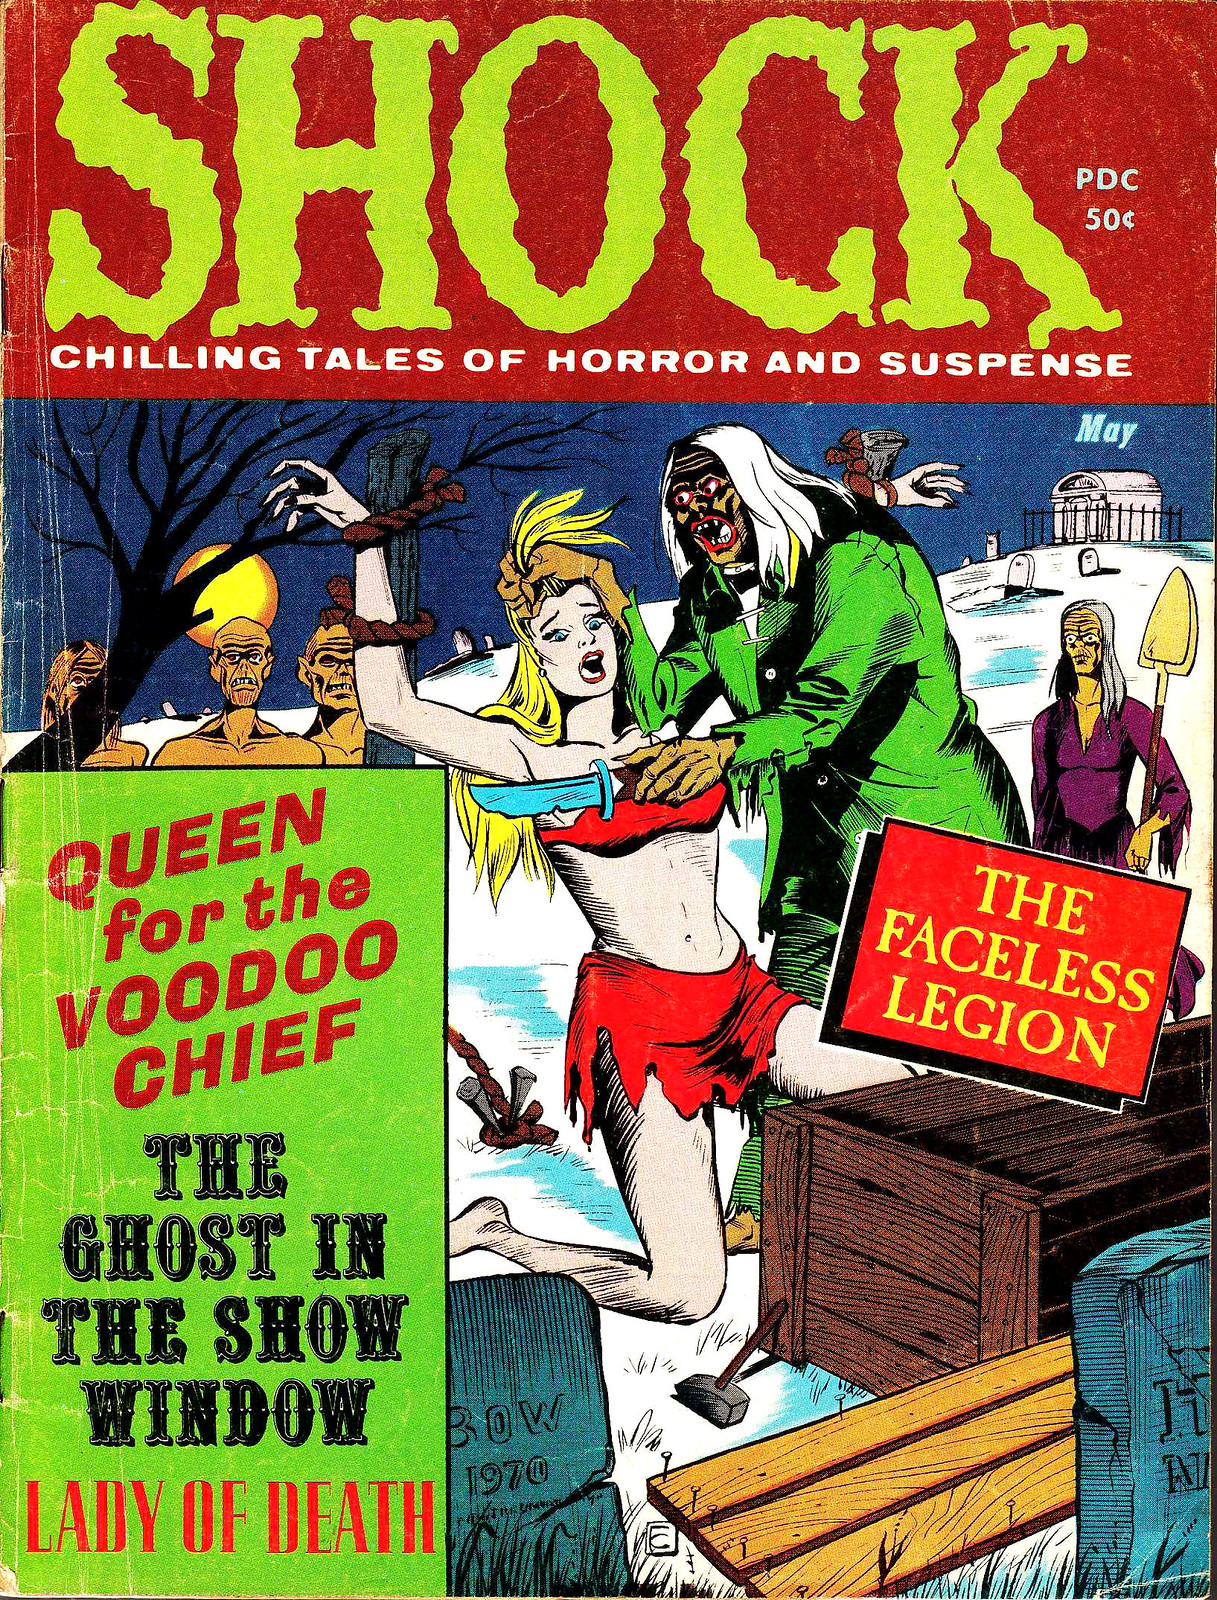 Shock - Volume 3, Issue 02, May 1971